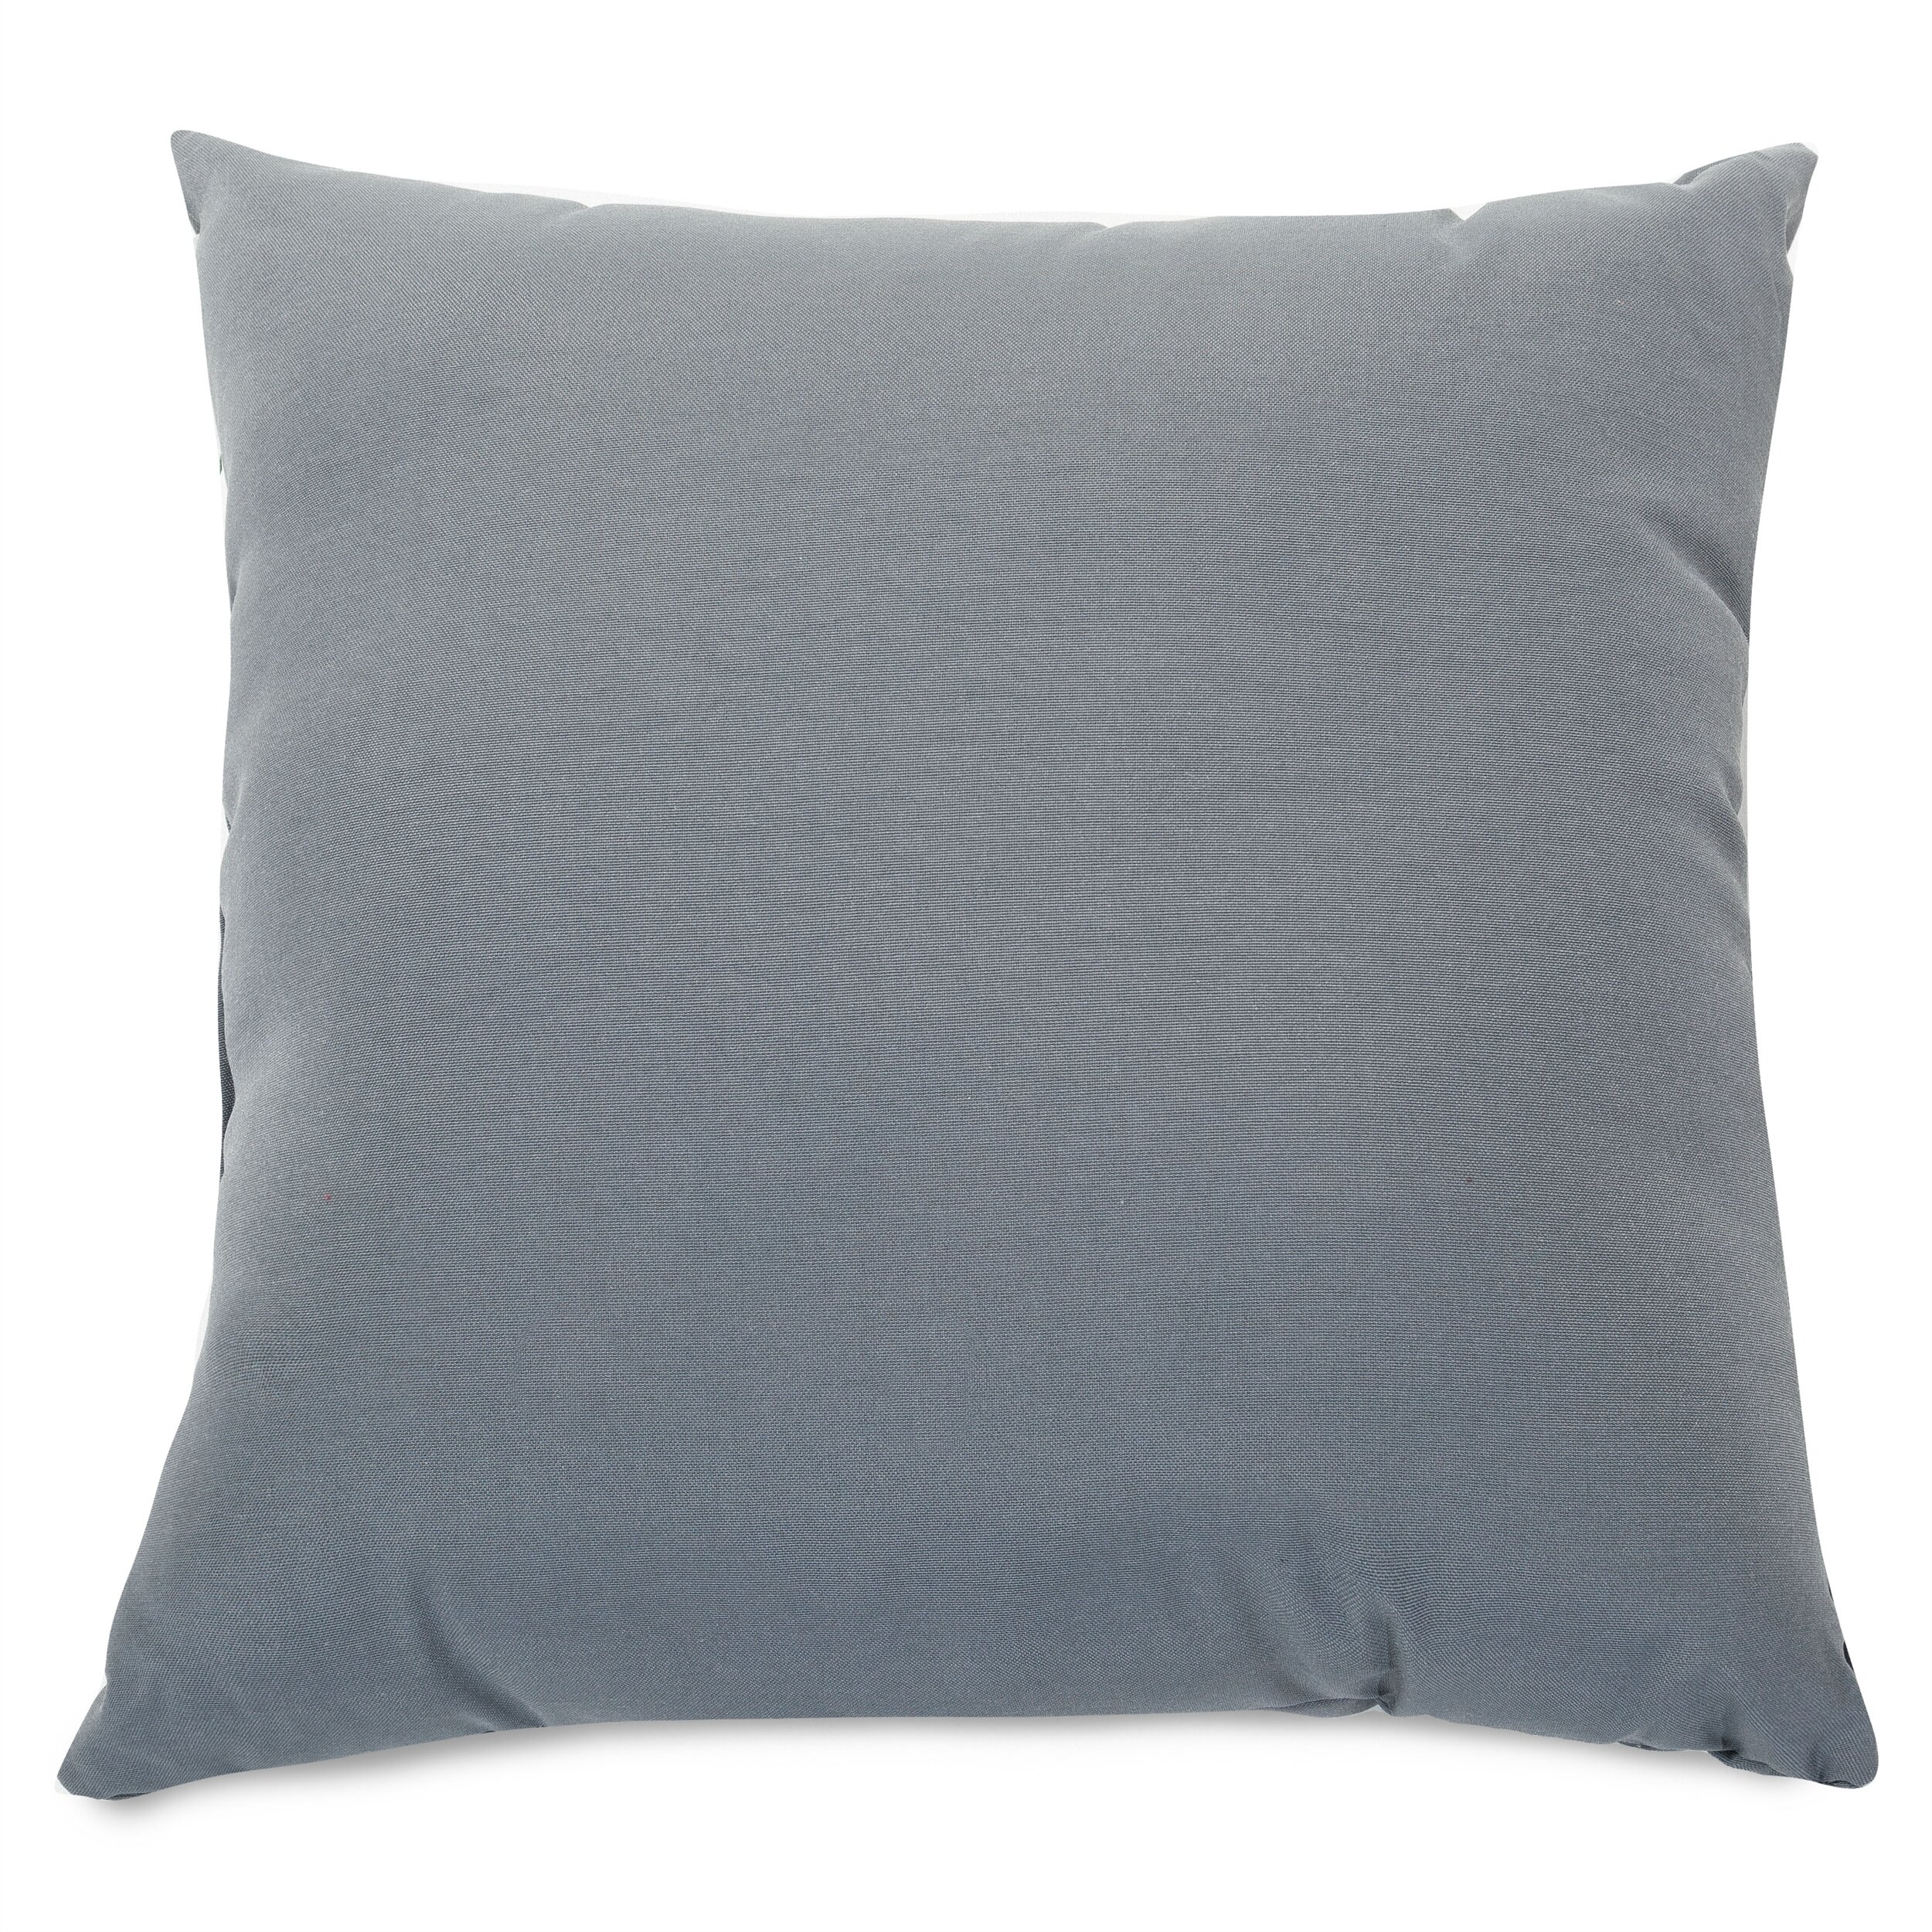 Majestic Home Goods Solid Throw Pillow Wayfair